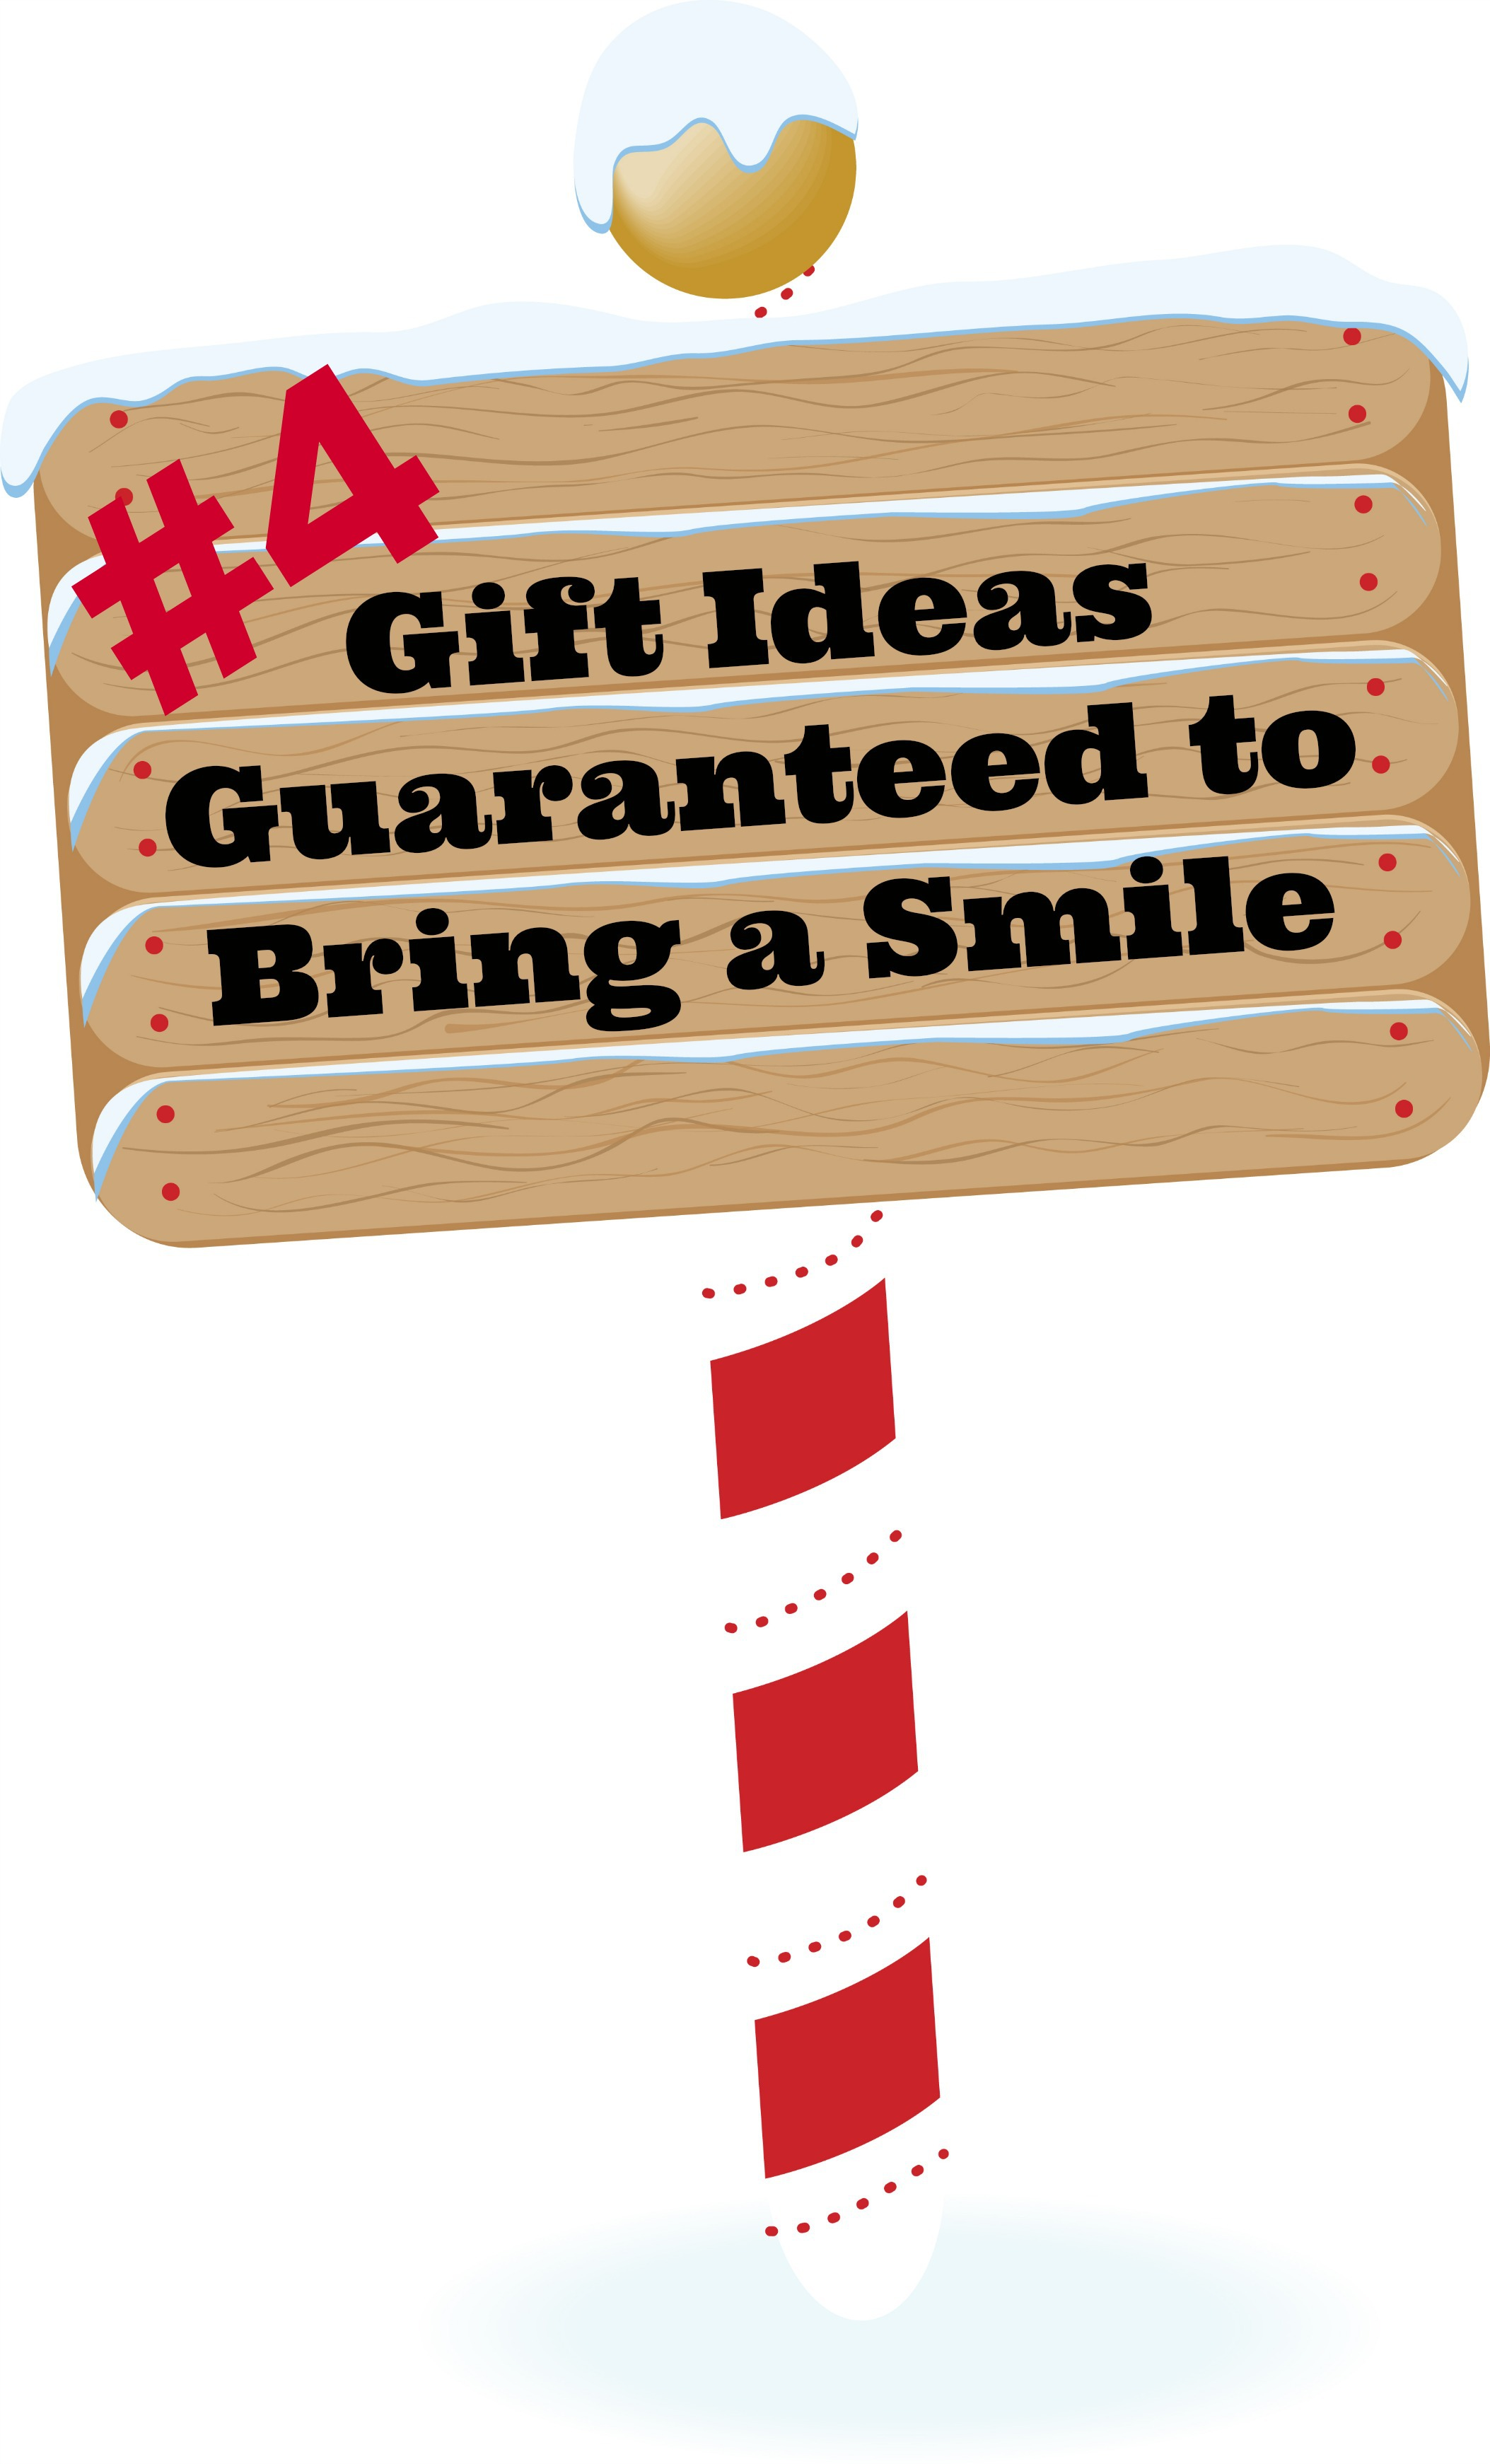 Gift Ideas Guaranteed to Bring a Smile – Idea 4